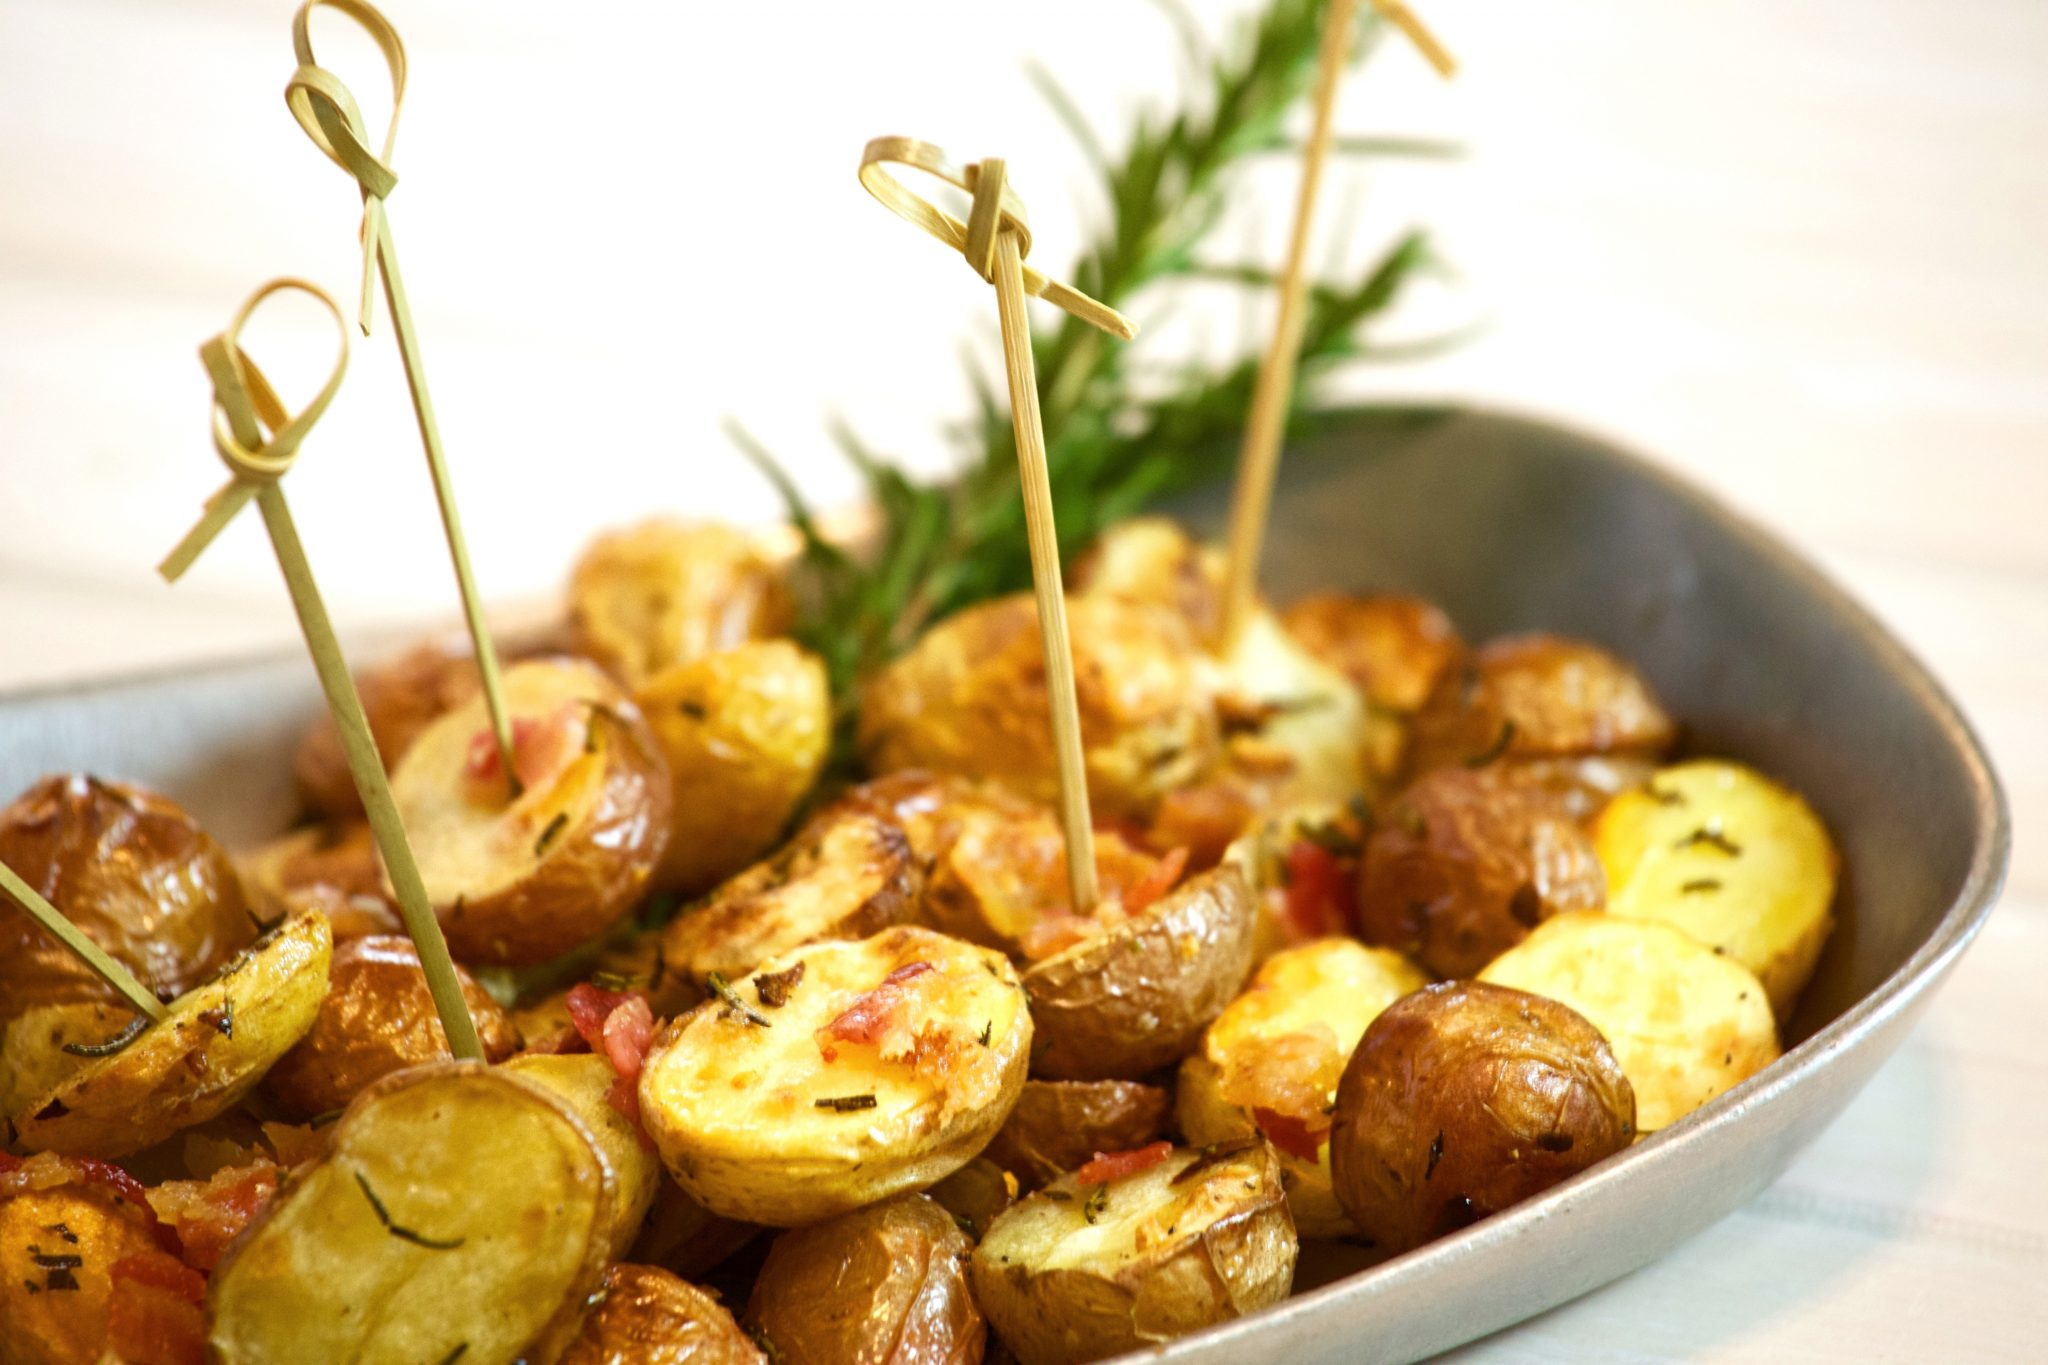 Apéritif: Oven Roasted Potatoes and Spicy Aioli - Rockwell